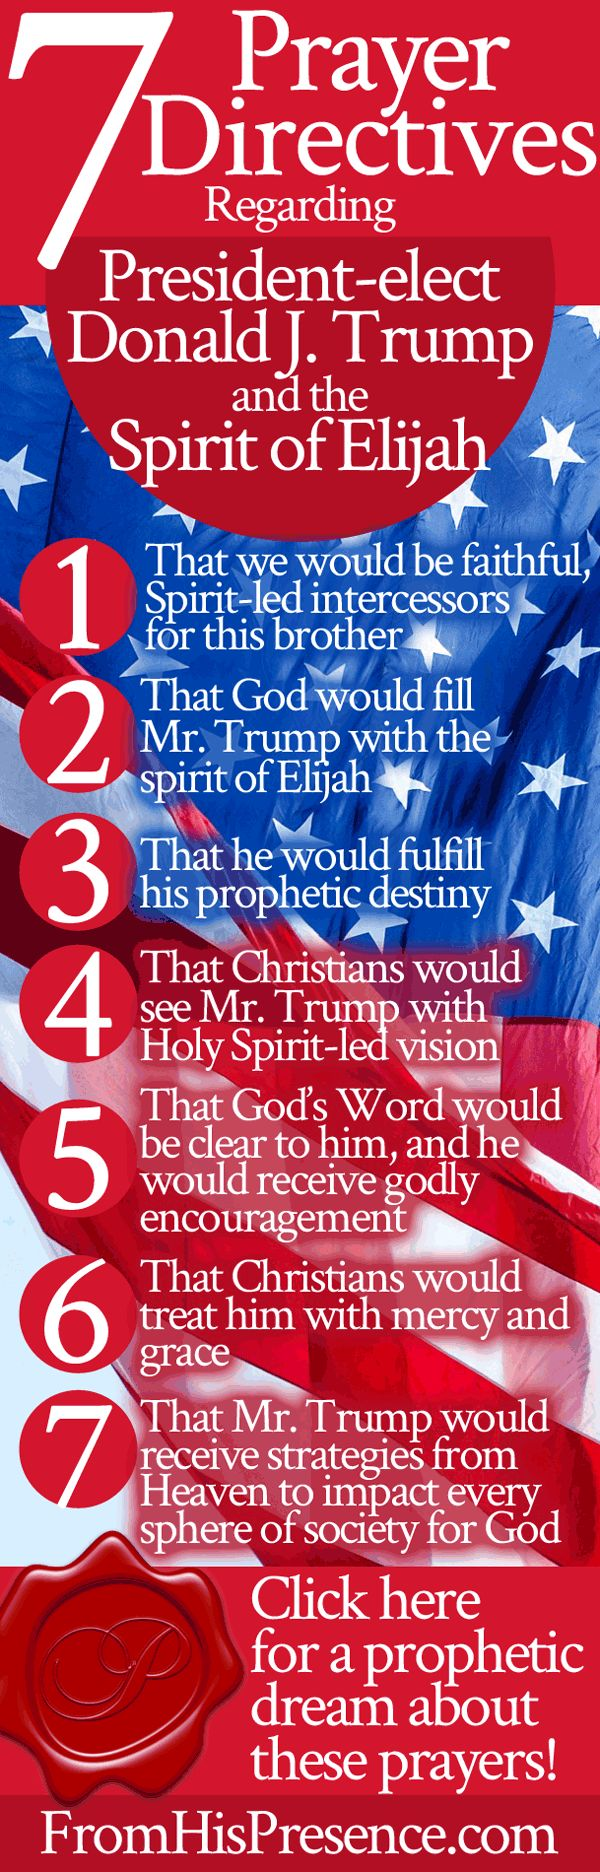 Prophetic prayer directives for President-elect Donald J. Trump and the spirit of Elijah.